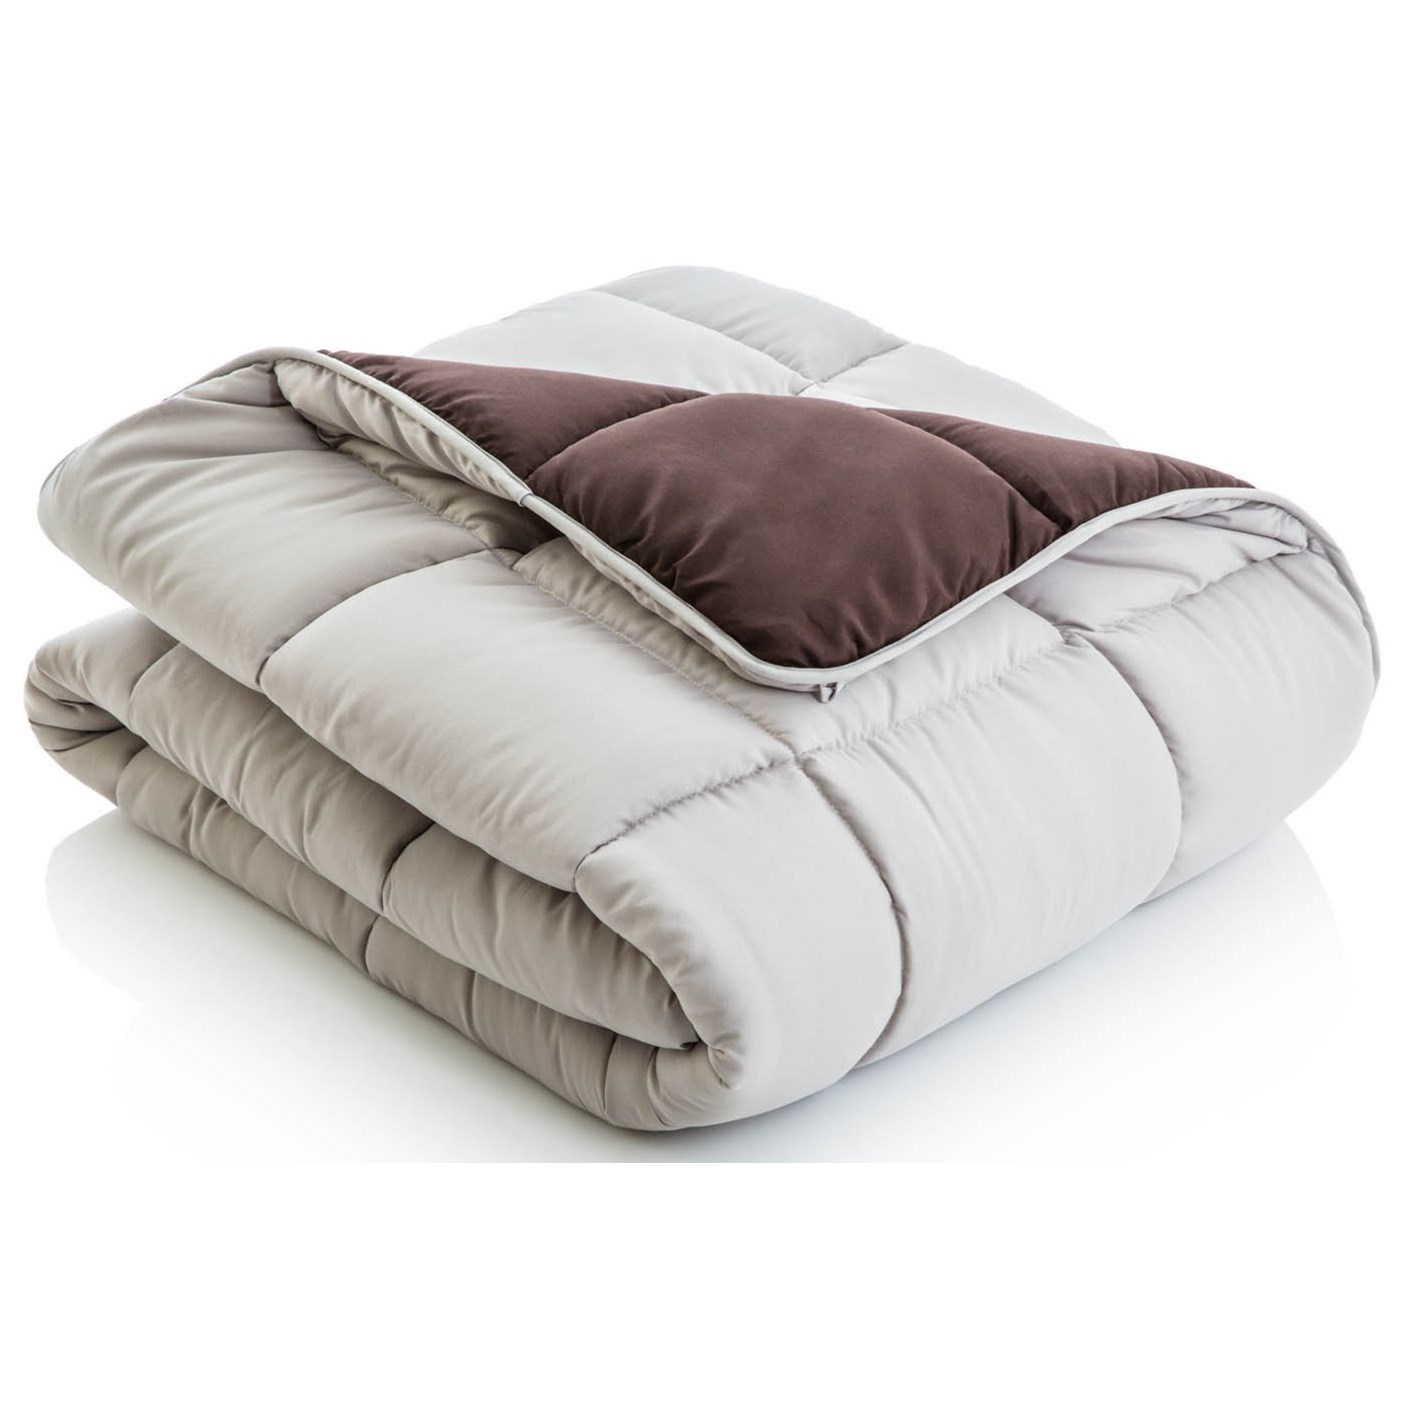 Malouf Reversible Bed in a Bag Full Reversible Bed in a Bag - Item Number: MA01FFDRCOBB